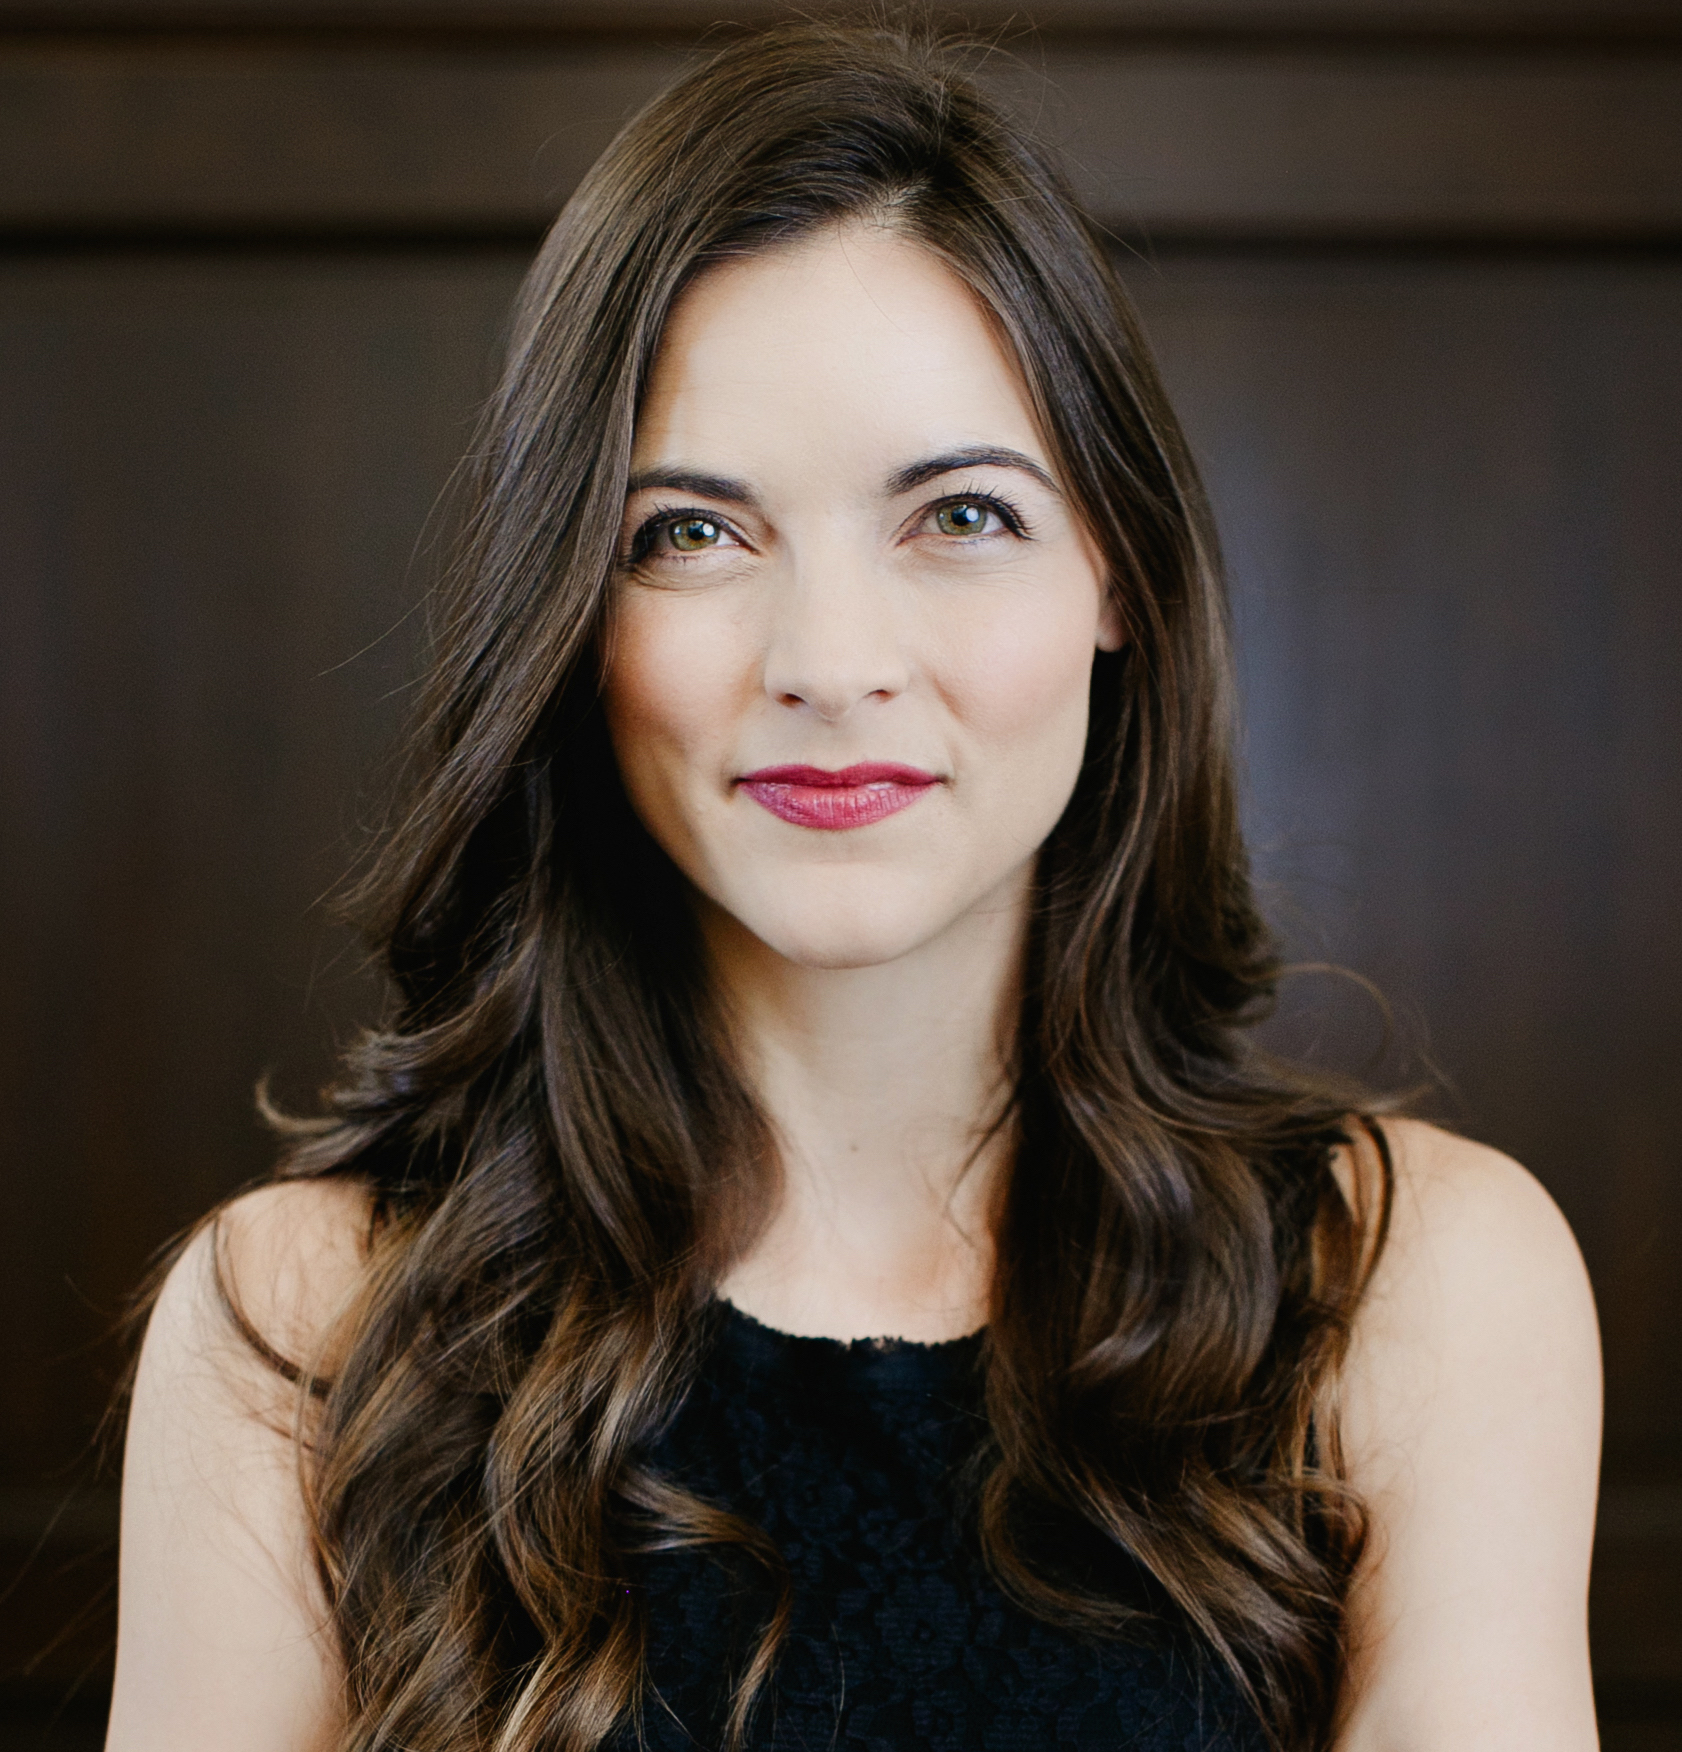 CEO of The Muse, Kathryn Minshew